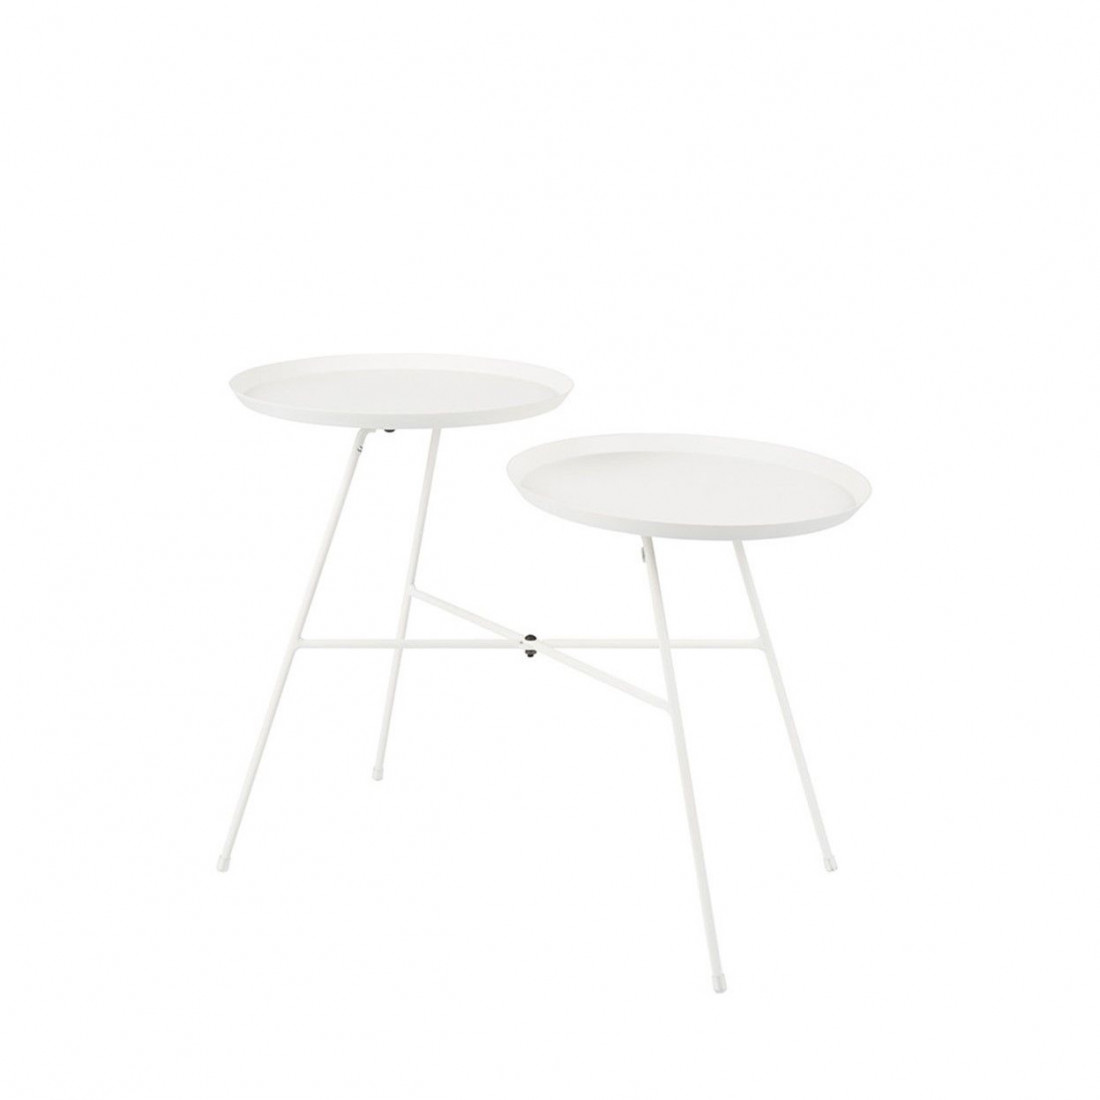 Table d'appoint Indy Blanche White Label Living